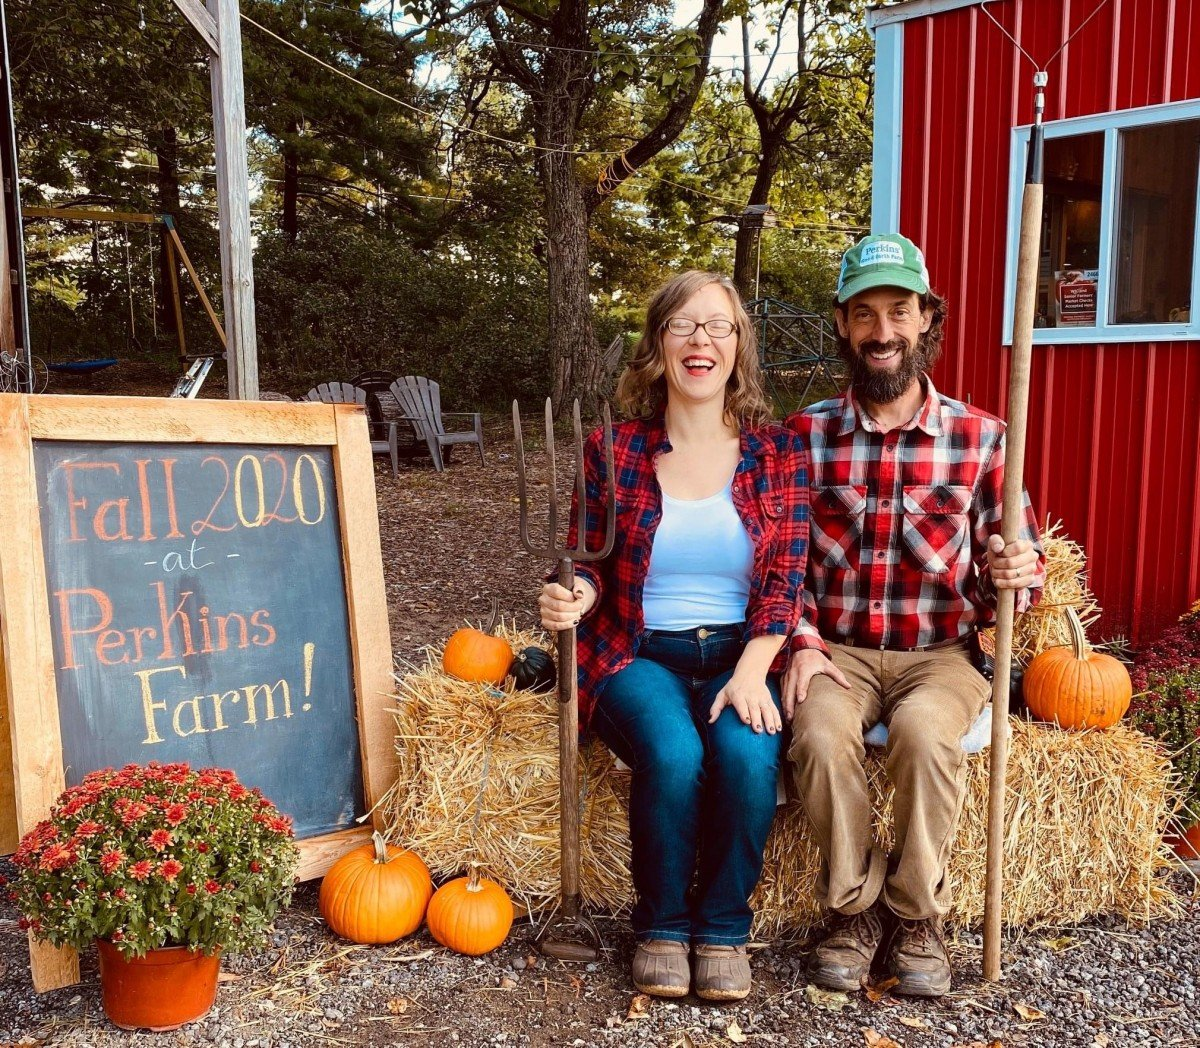 Dan and Julie Fall 2020